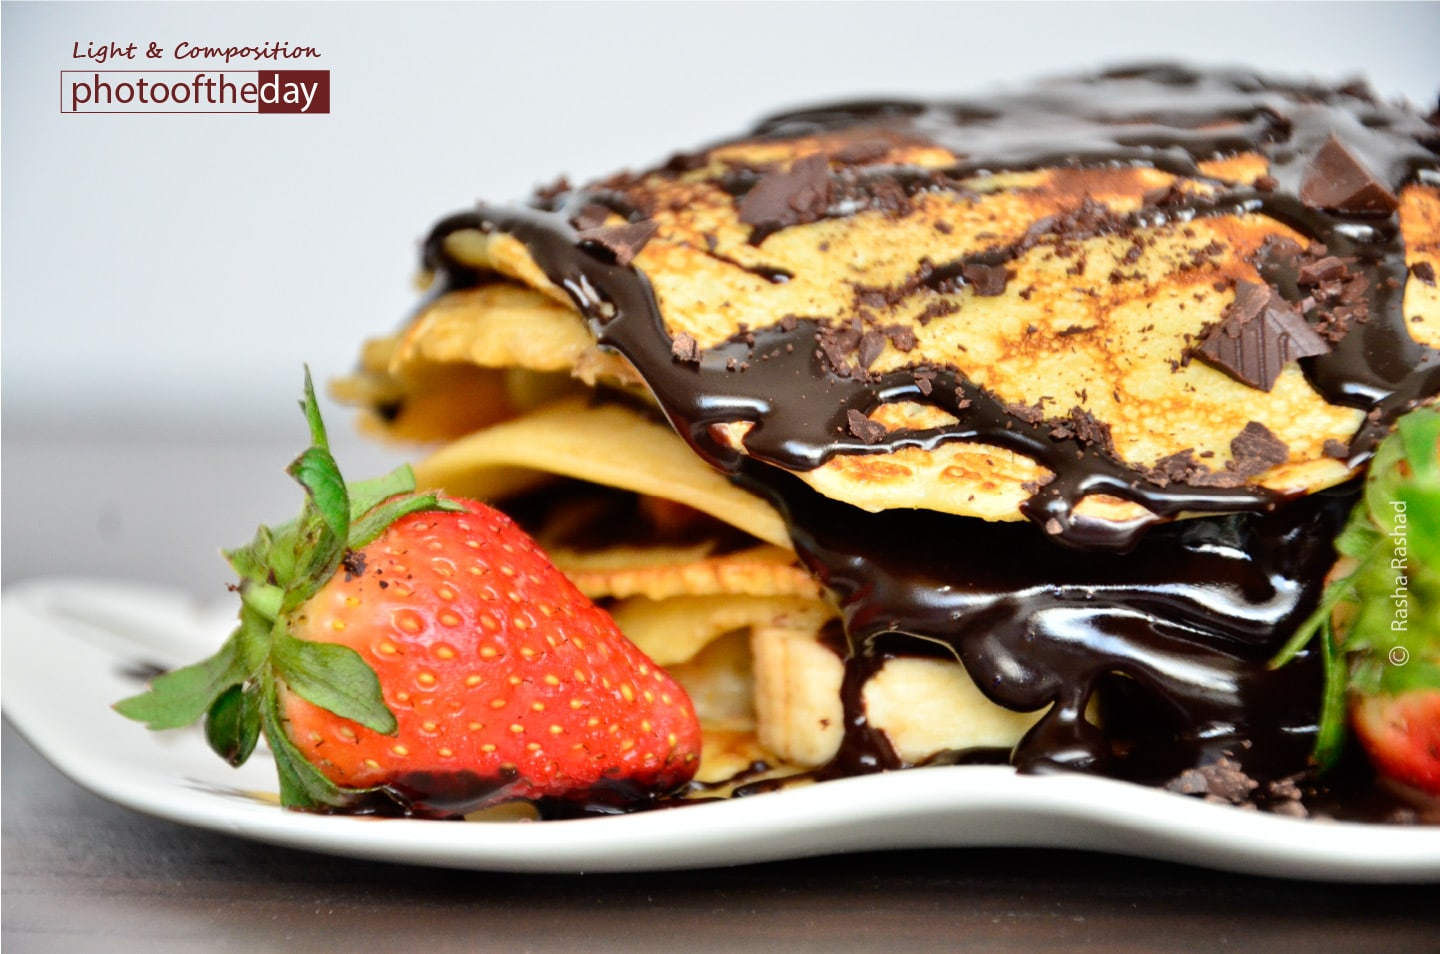 Strawberry and Chocolate Pan-crepe, by Rasha Rashad